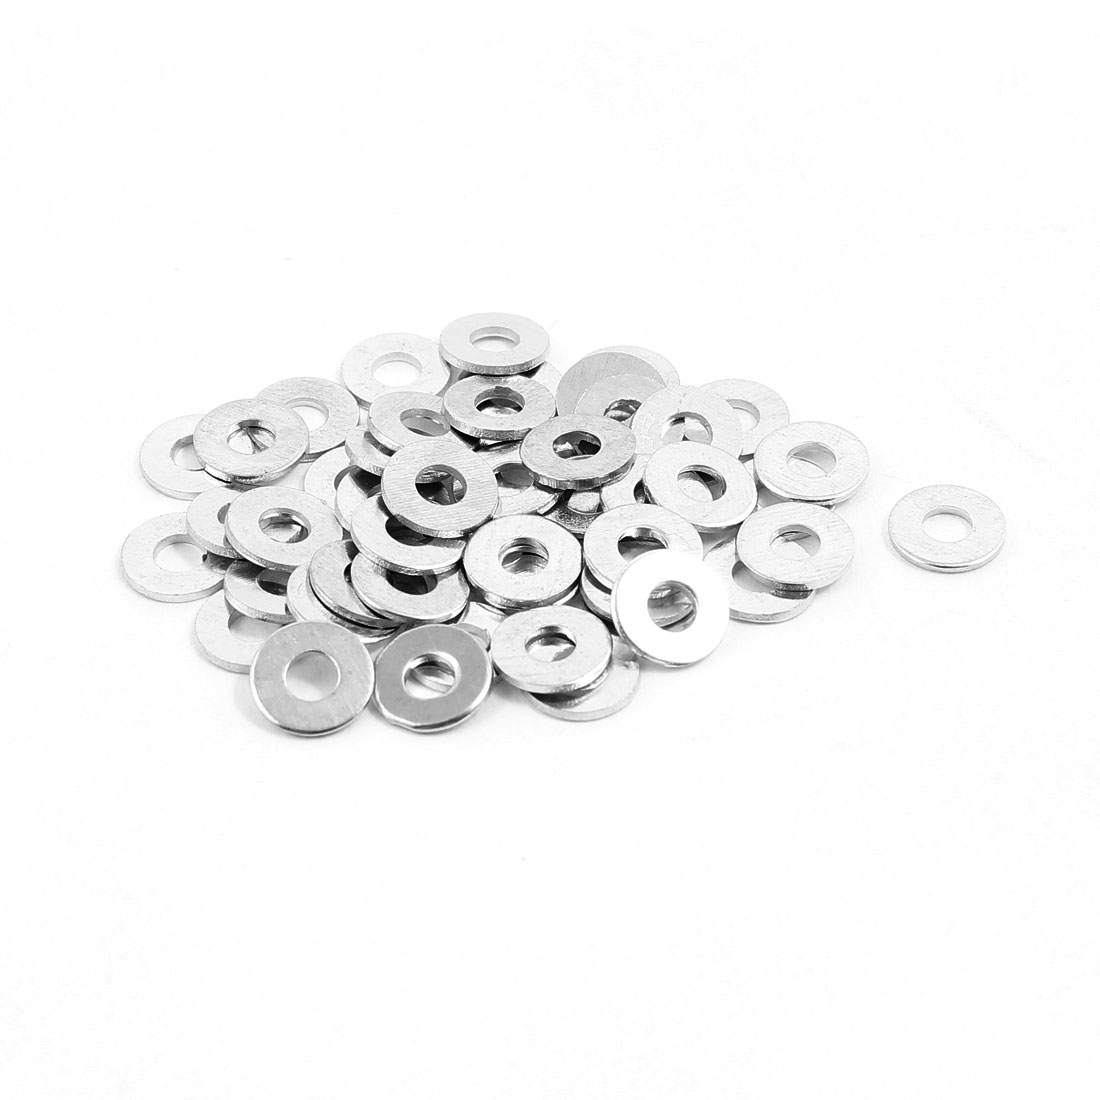 3x8mm Stainless Steel Flat Washer Plain Spacer Gasket Fastener for Screw Bolt 50pcs